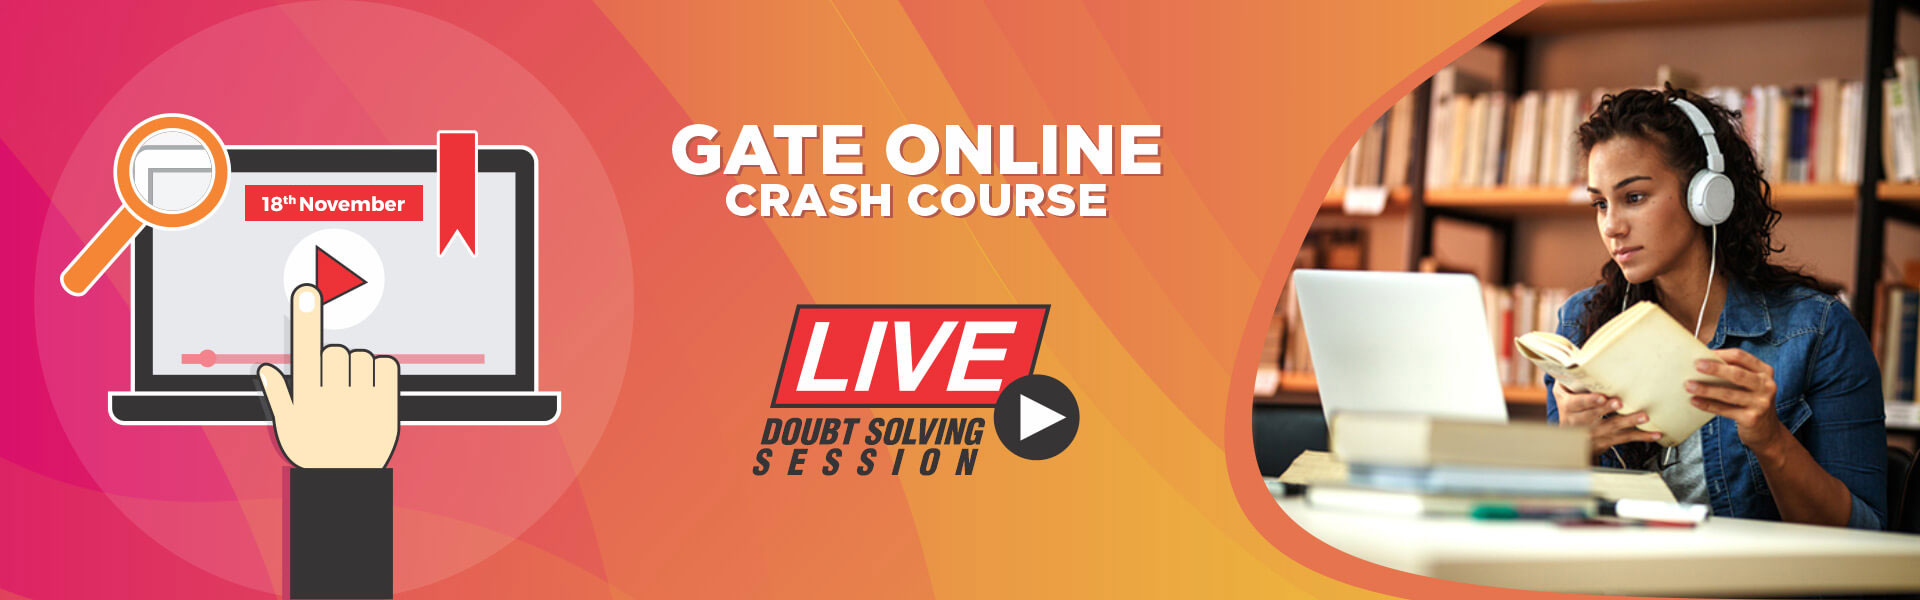 GATE Crash Course